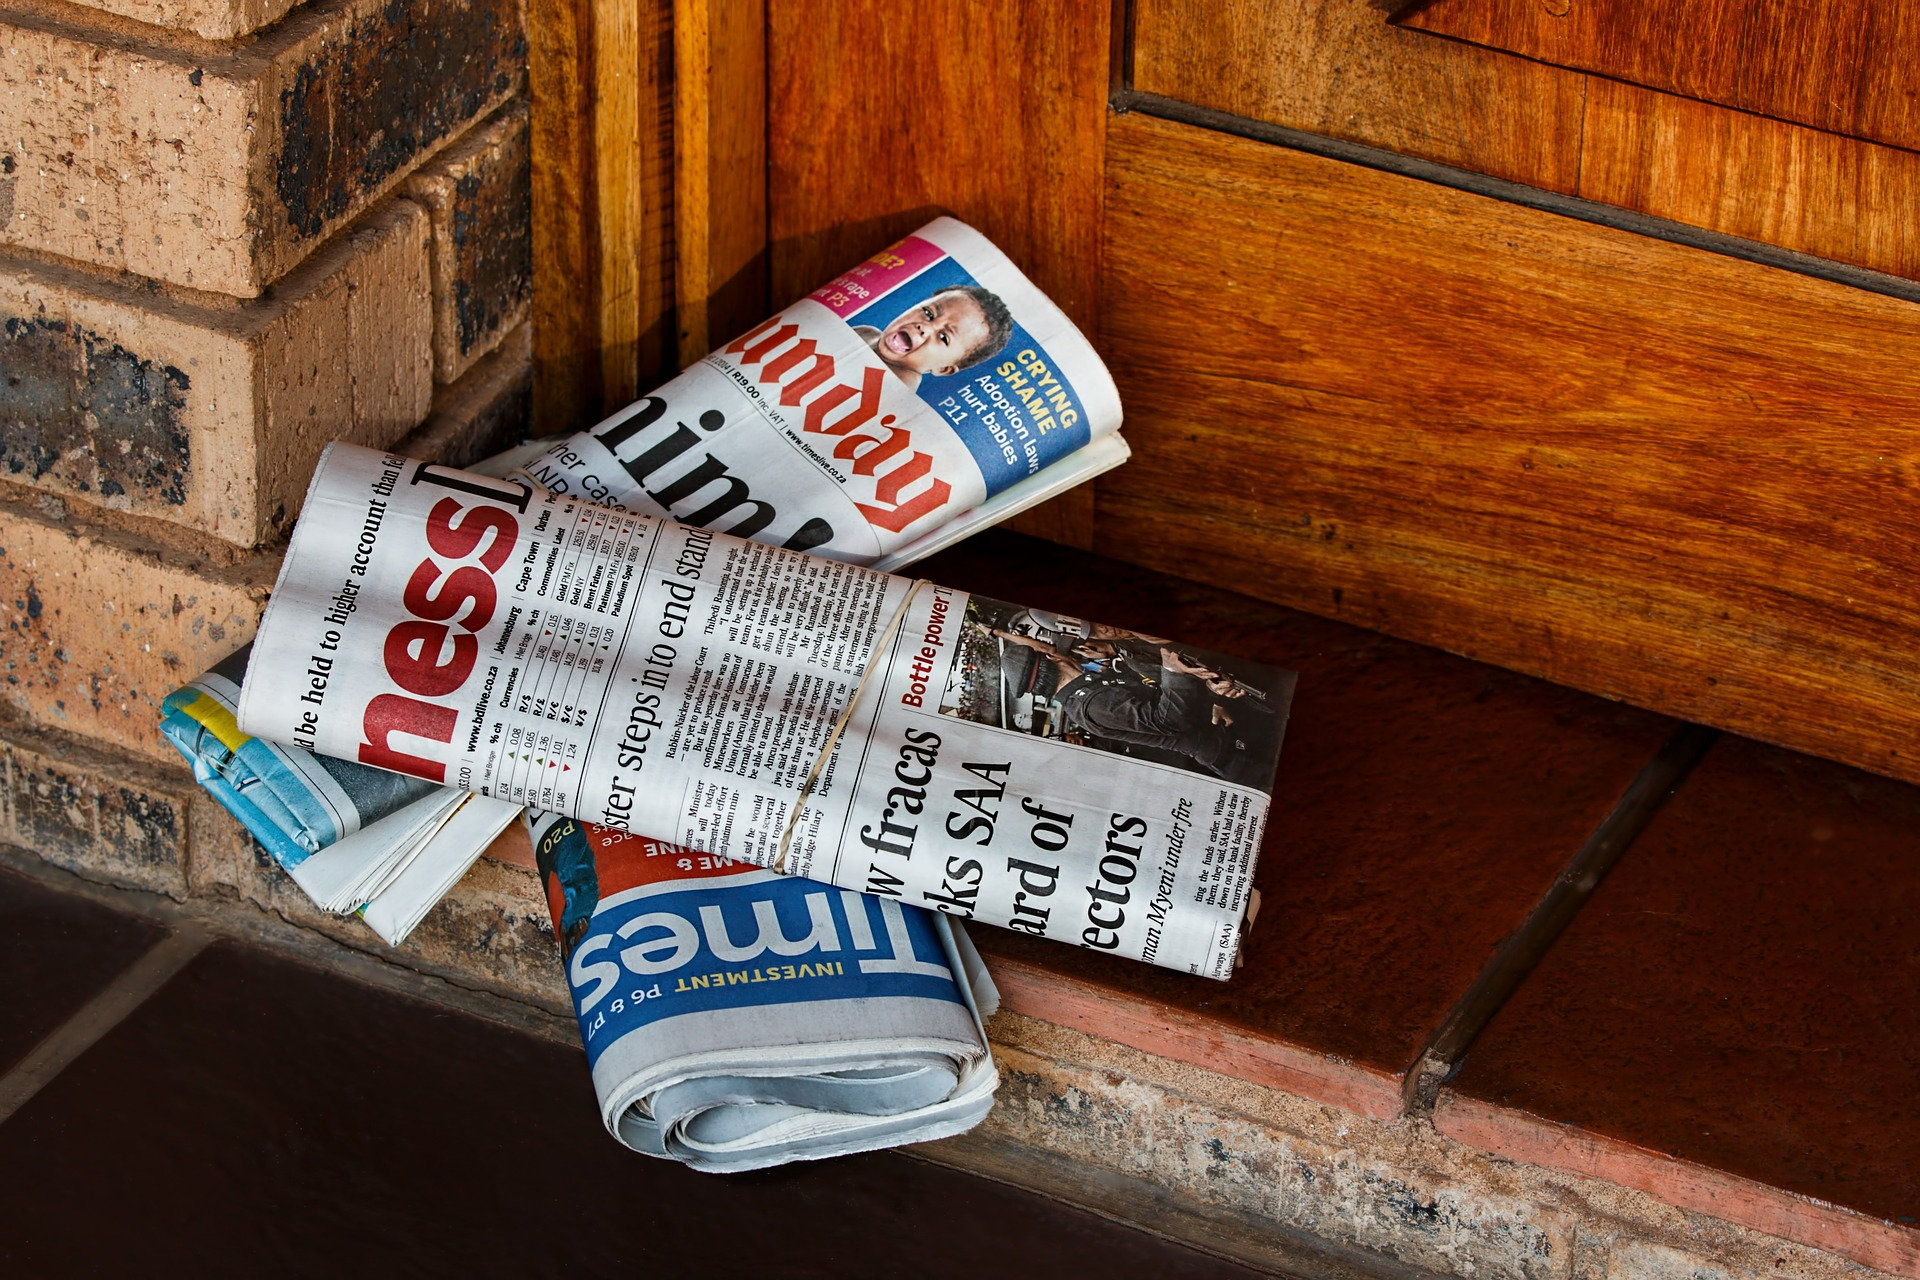 Image of newspapers on doorstep